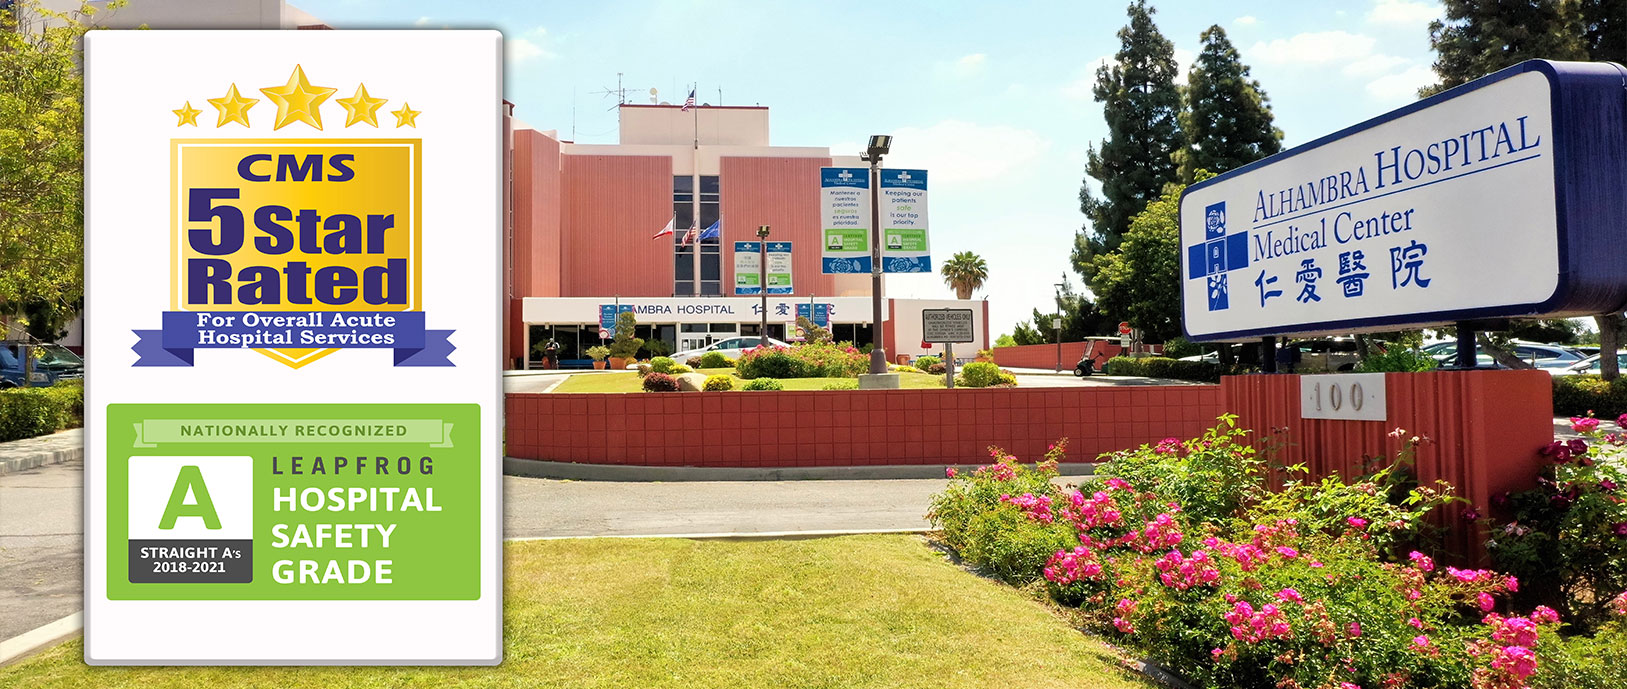 Banner Picture of the front of ALHAMBRA HOSPITAL. There is a sign in front of the Hospital that says: ALHAMBRA HOSPITAL Medical Center  There is flowers, palm trees, and four flags in front of the hospital